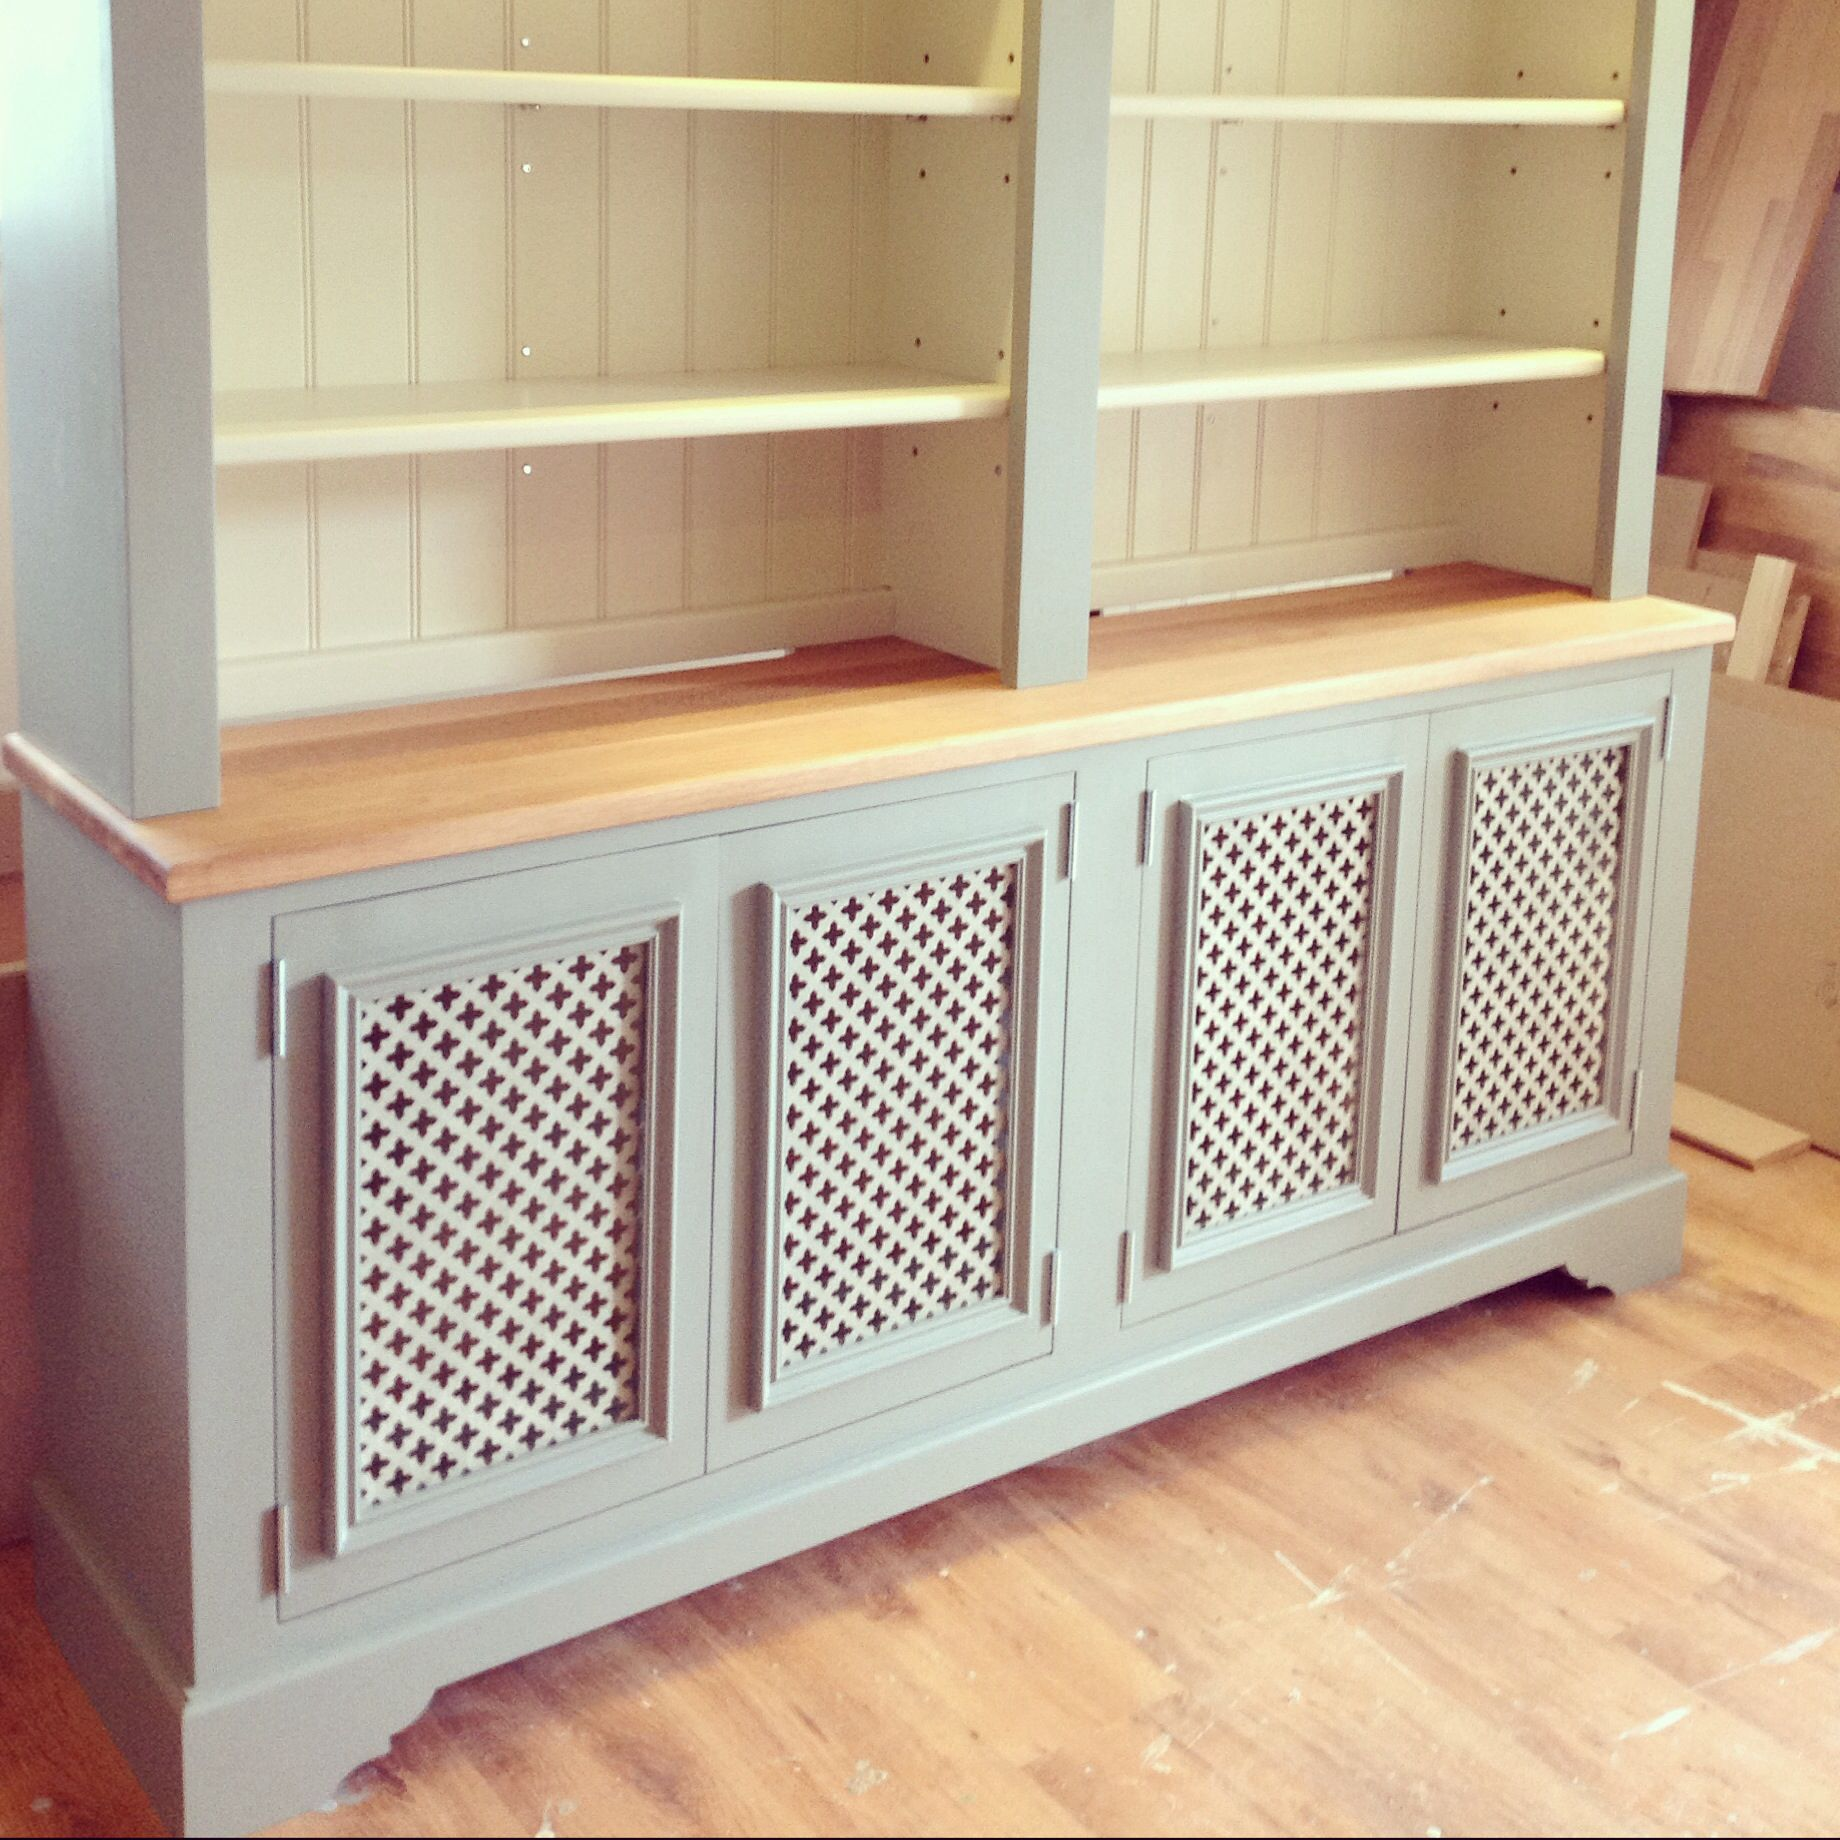 Radiator Cover Dresser Painted In Farrow Ball Lime White Pigeon By Ross Trent Cabinet Maker Uk Radiator Cover Furniture Kitchen Radiator